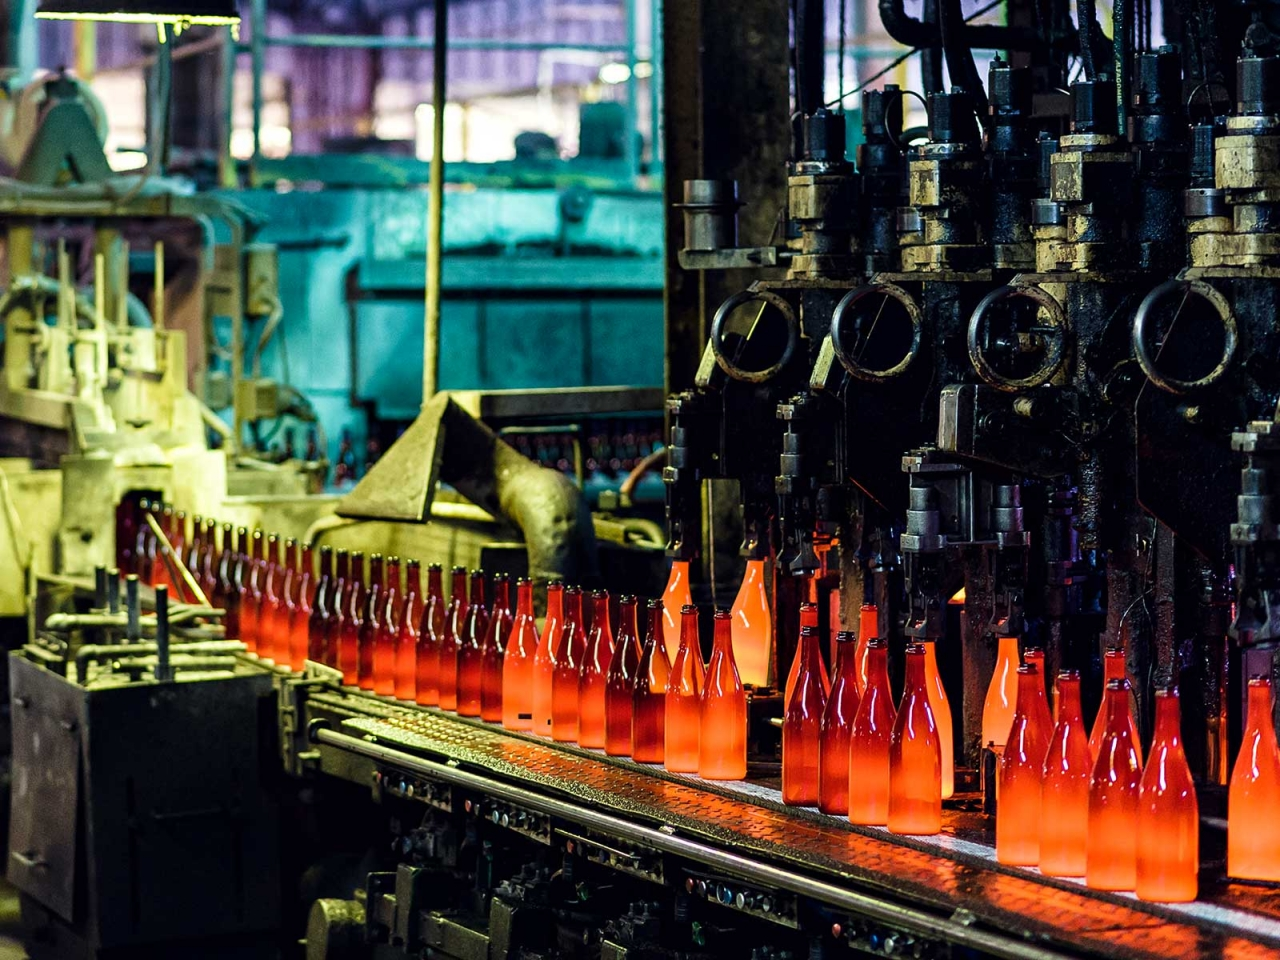 Bottling plant shown with a row of orange and red filled glass bottles